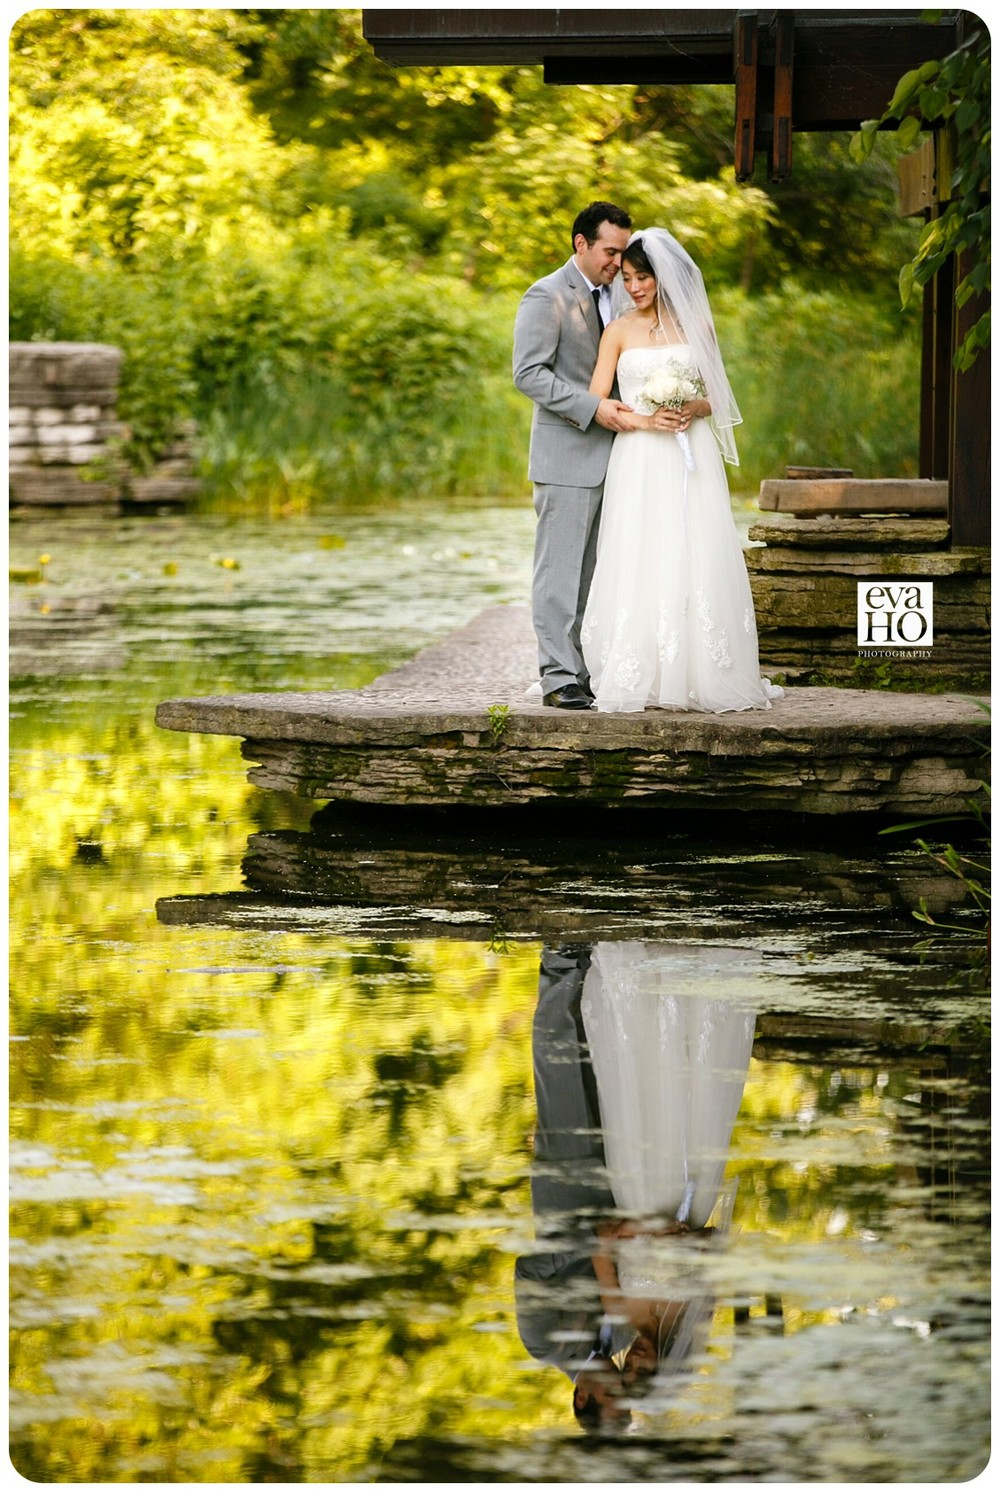 The secluded location of Caldwell Alfred Lily Pond at the heart of Lincoln Park reflects the couple's personality